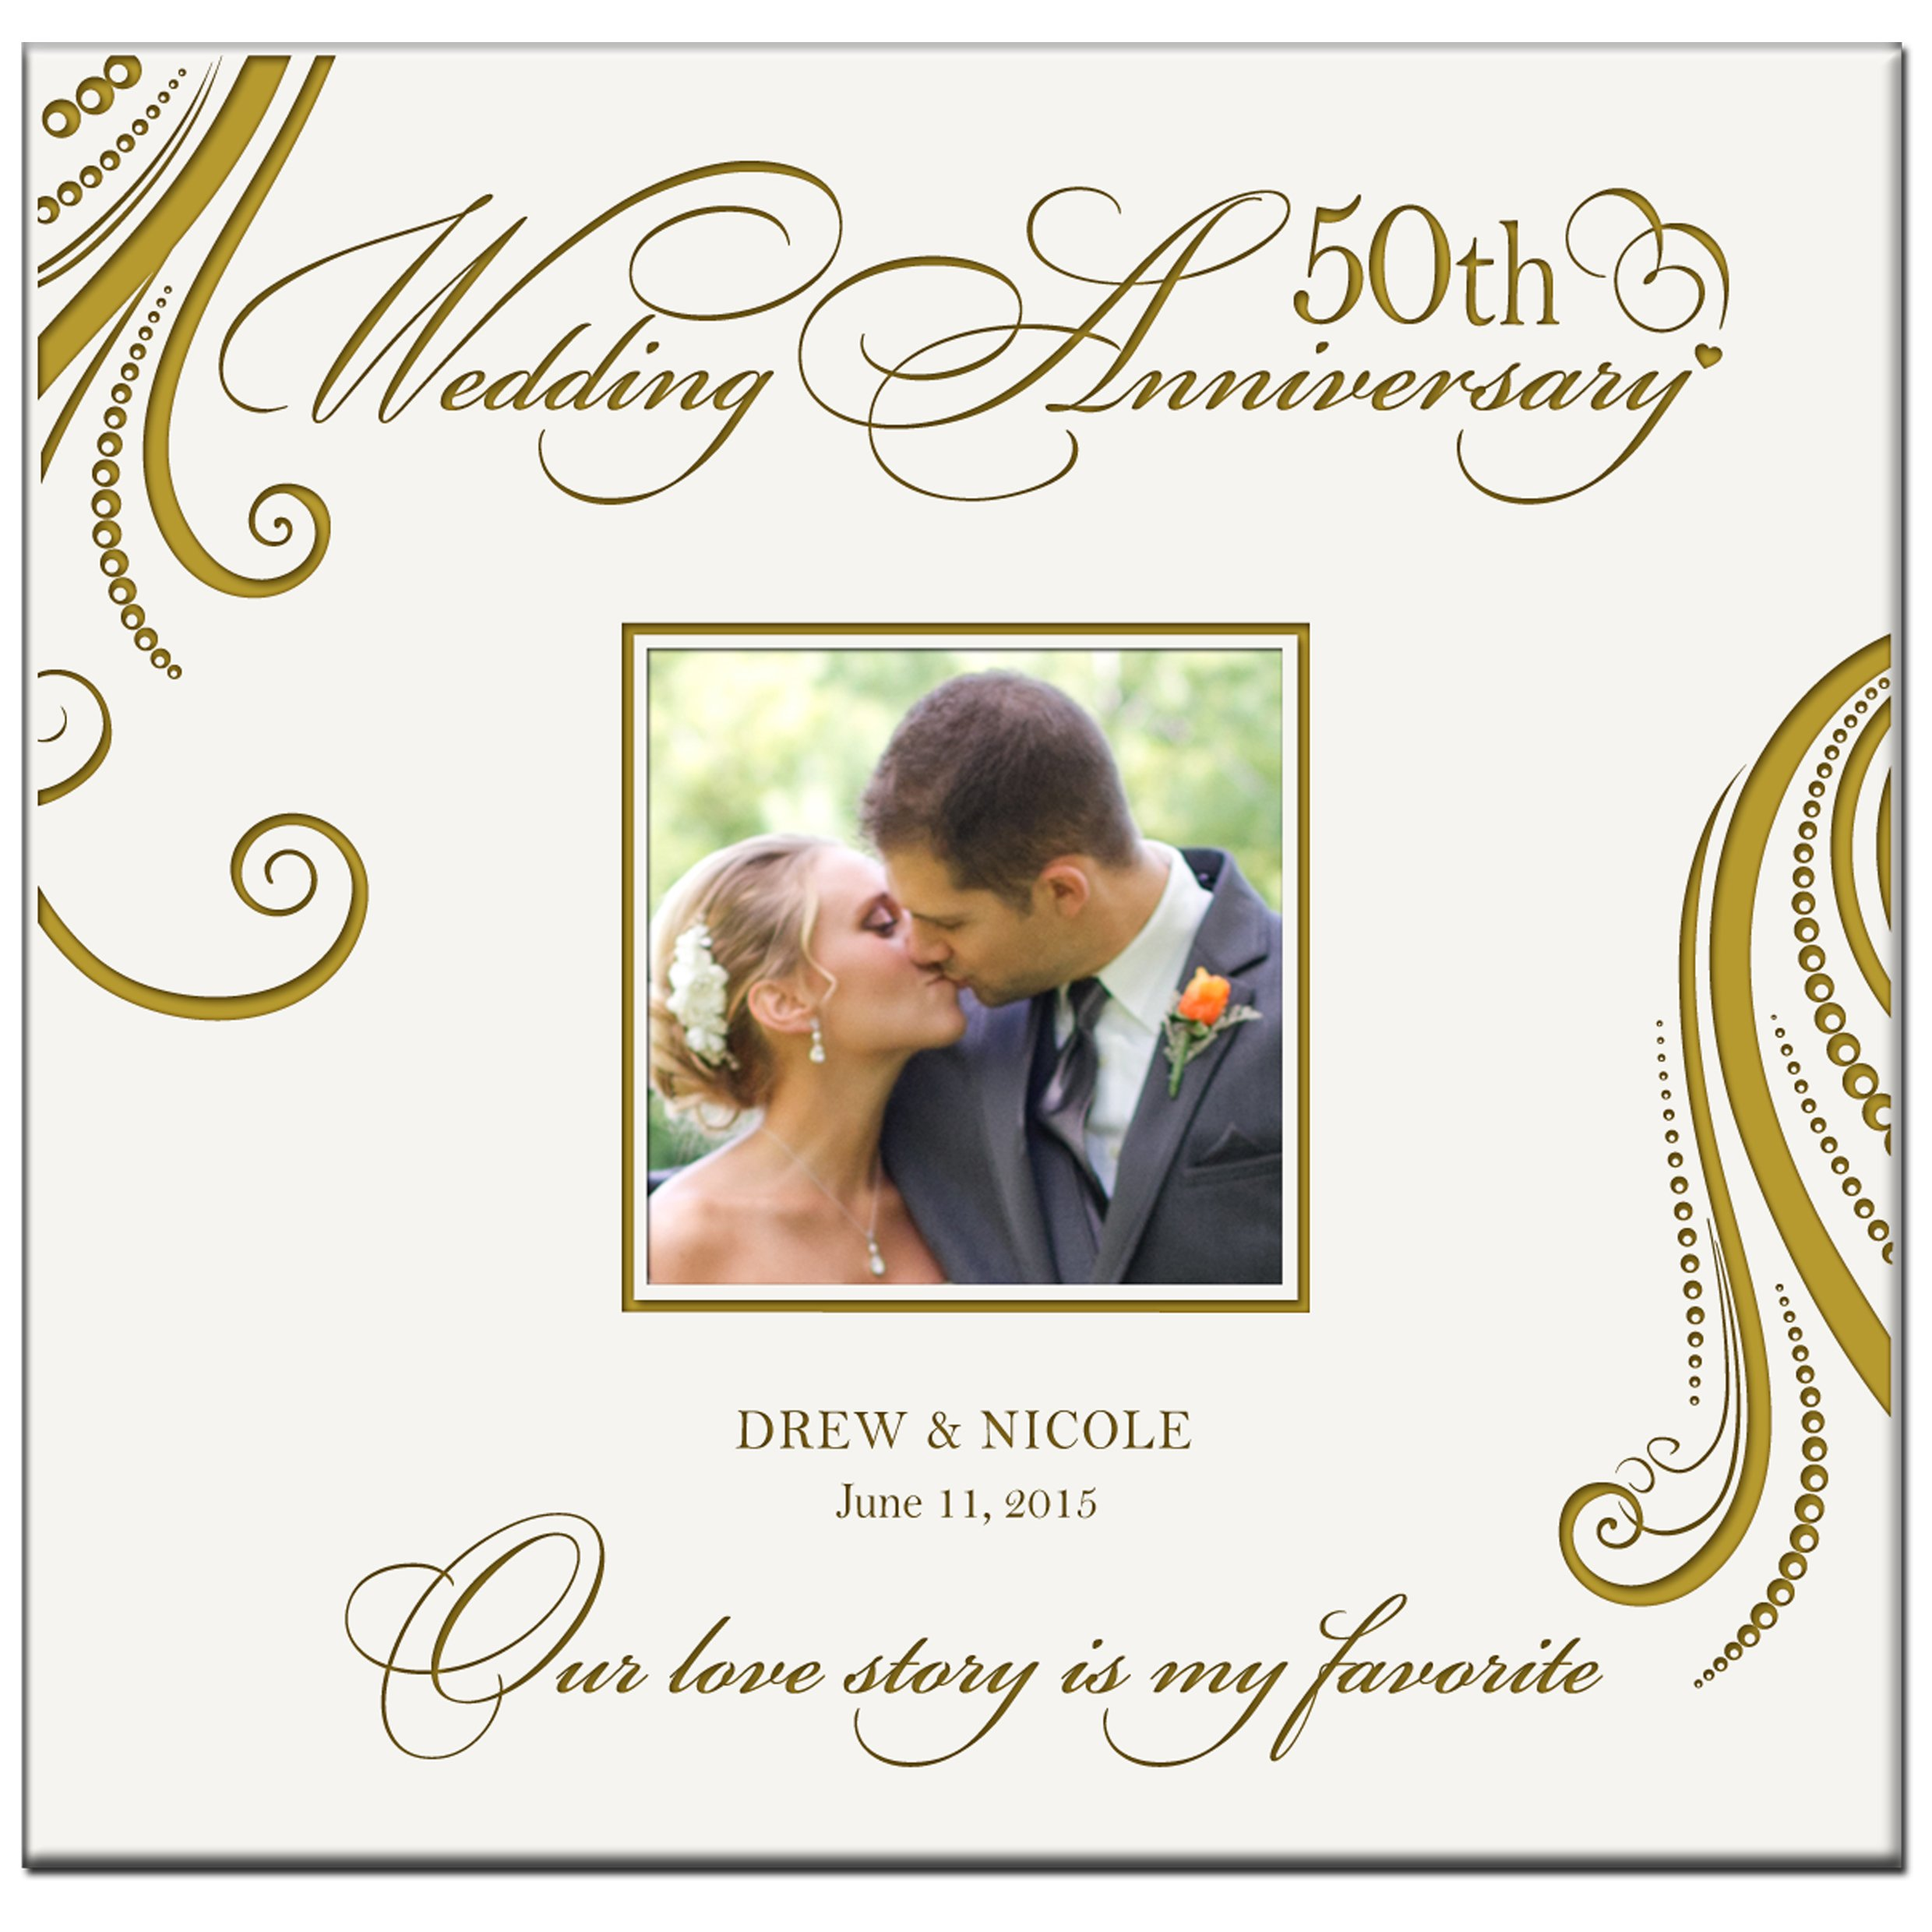 Personalized 50th Wedding Anniversary Our Love Story Is My Favorite Photo Album Gifts Holds 200 4x6 Photos By LifeSong Milestones